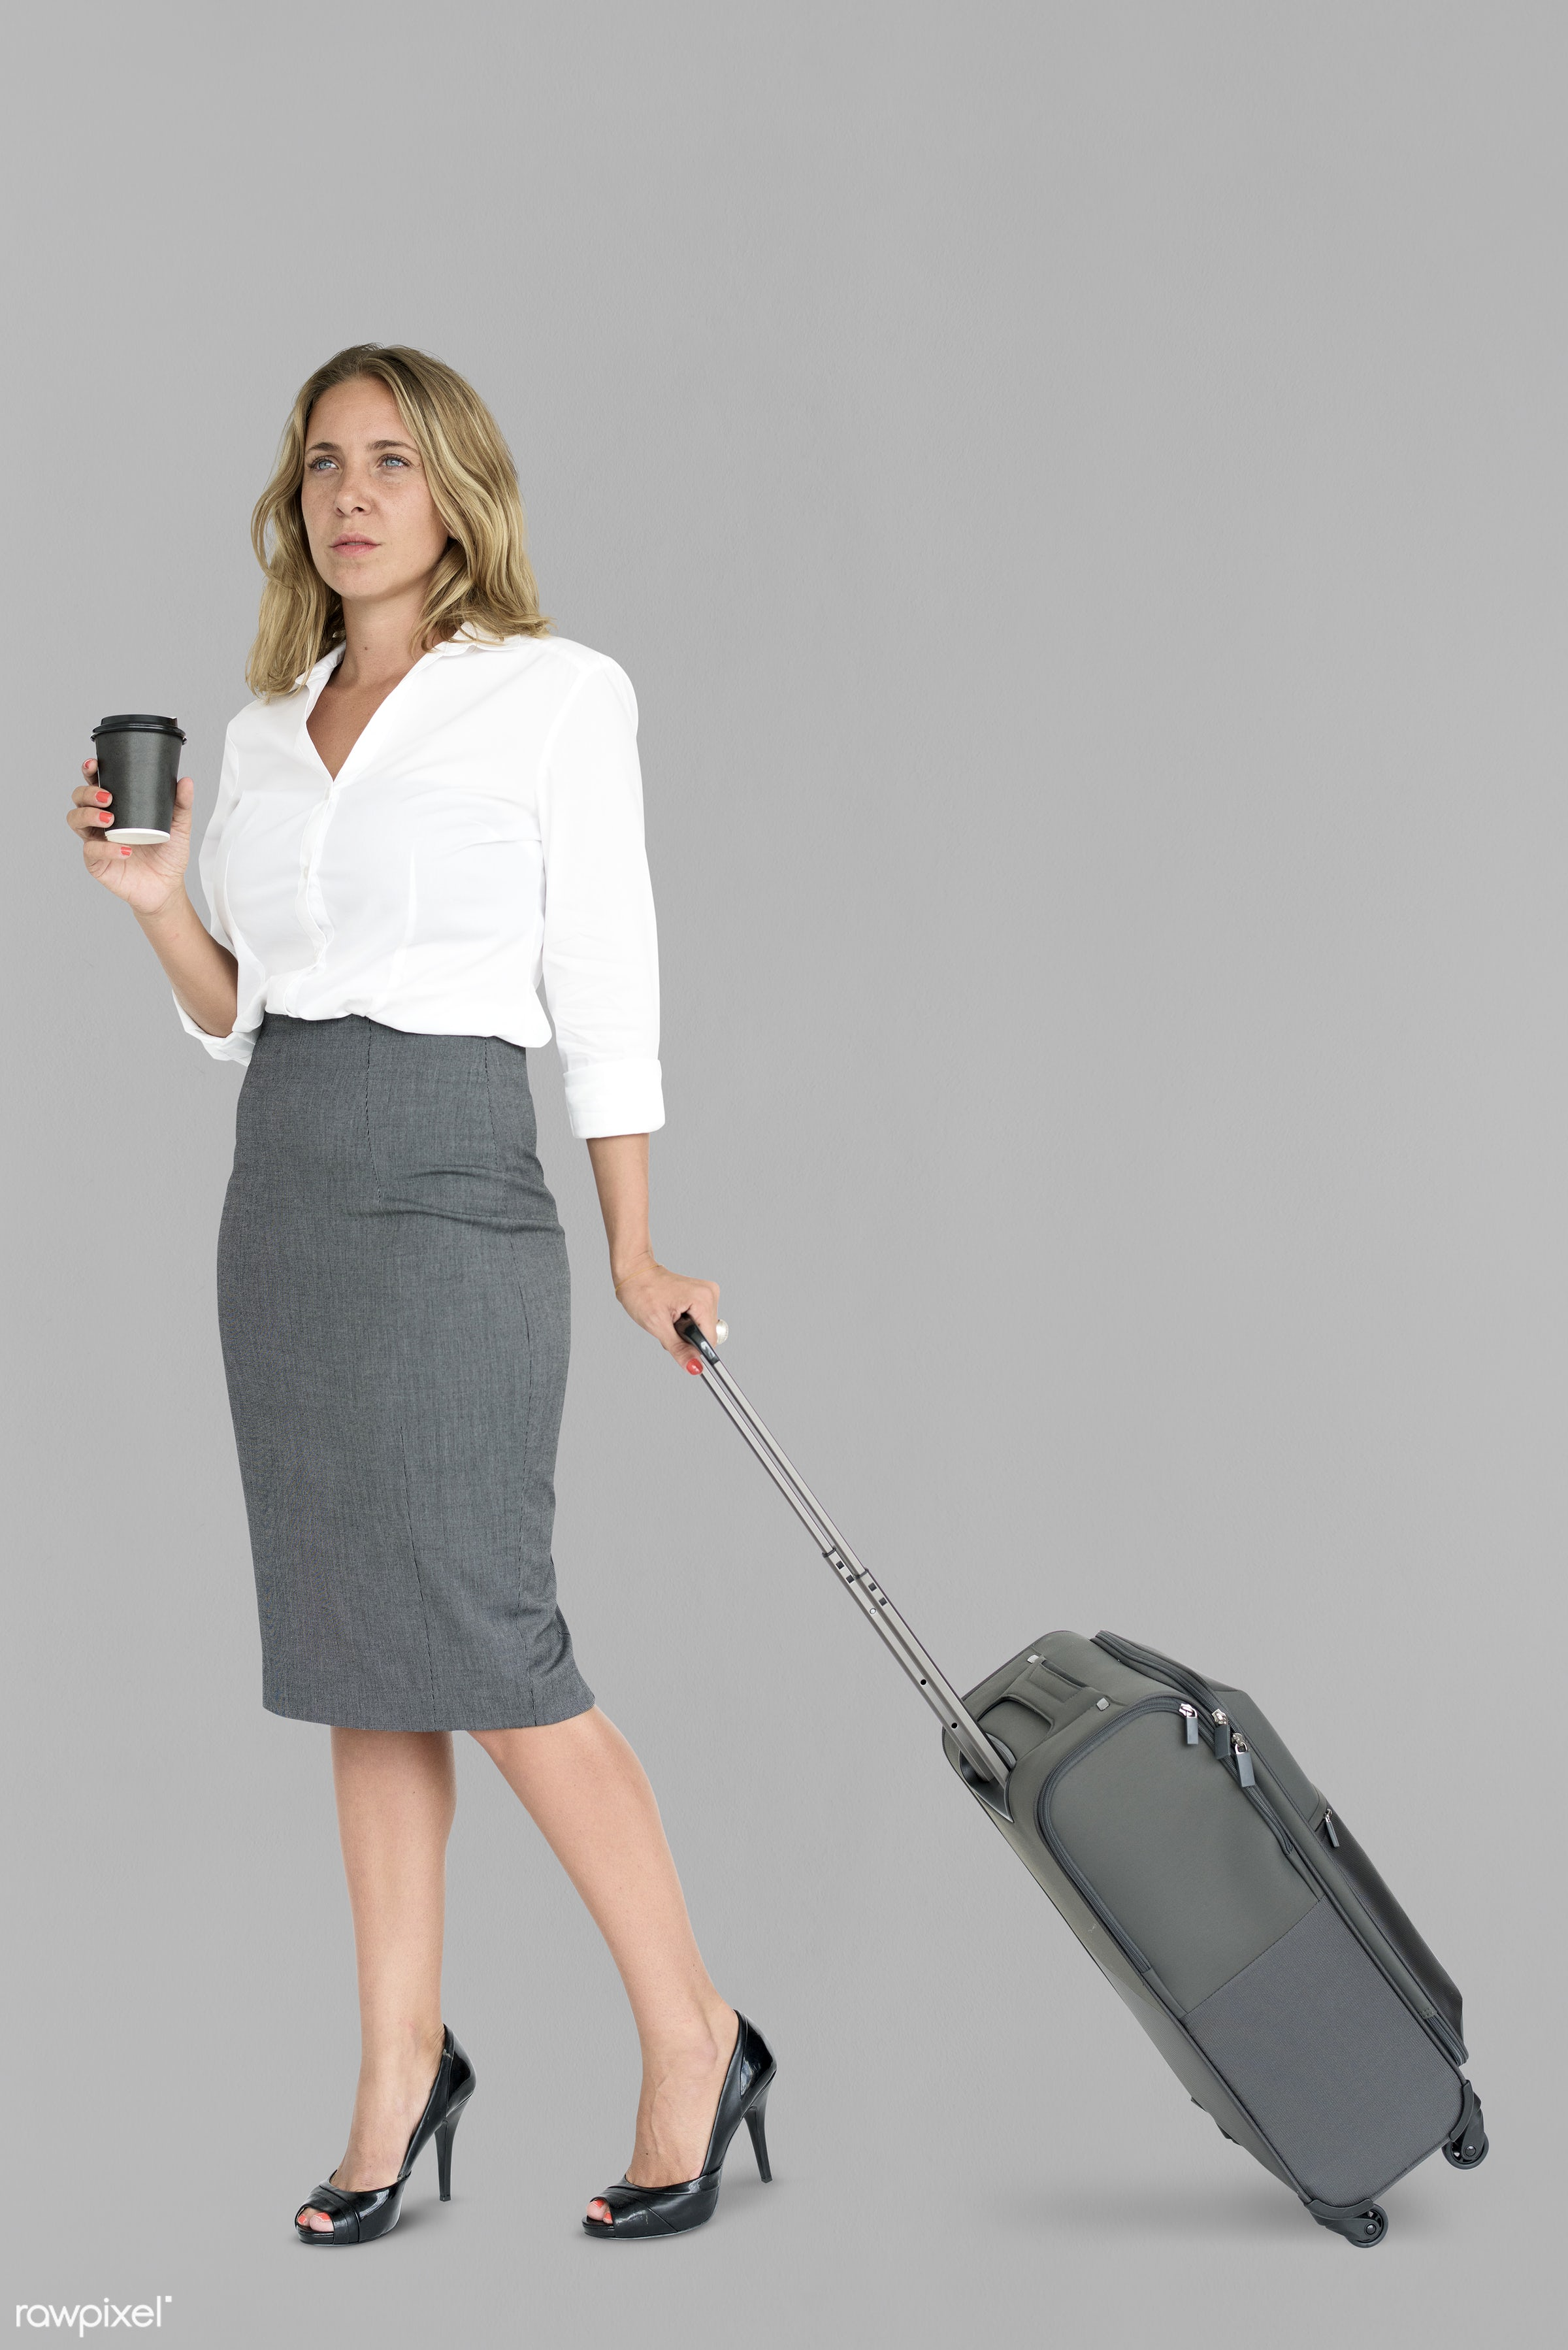 cup, studio, face, person, travel, people, drinks, business, grey, trip, man, isolated, suitcase, coffee, male, traveler,...